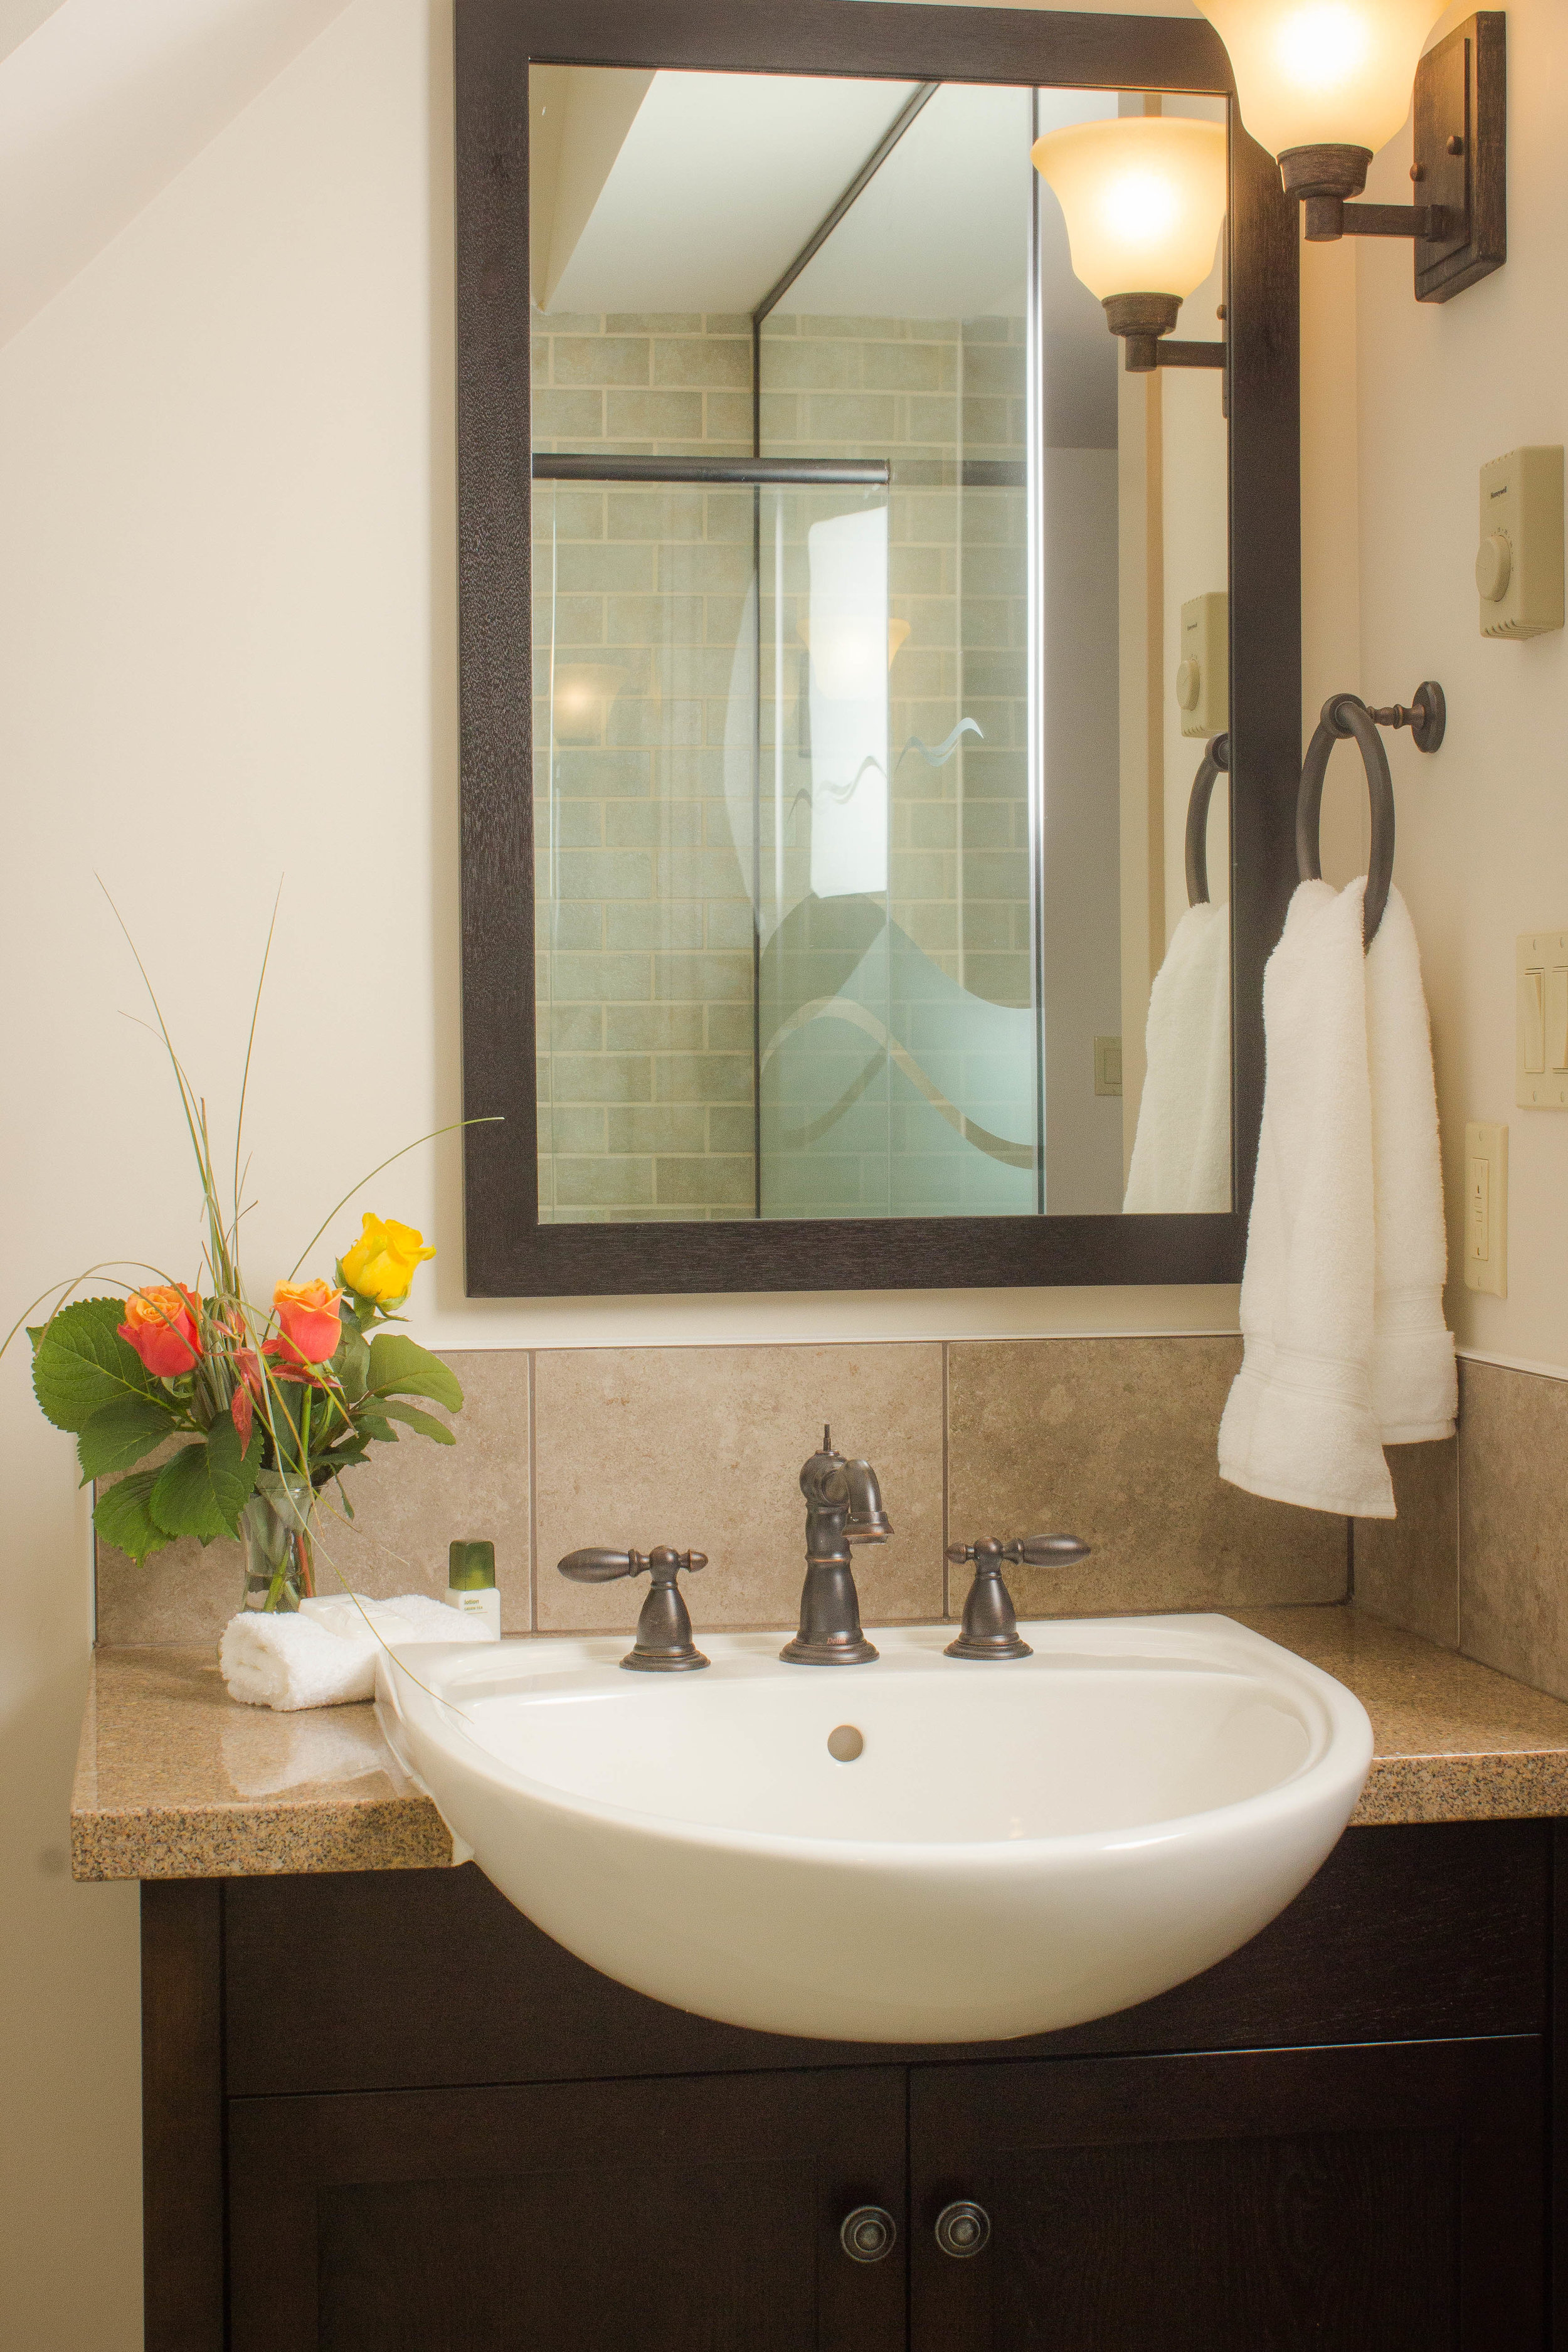 Under mount sinks with Delta faucets